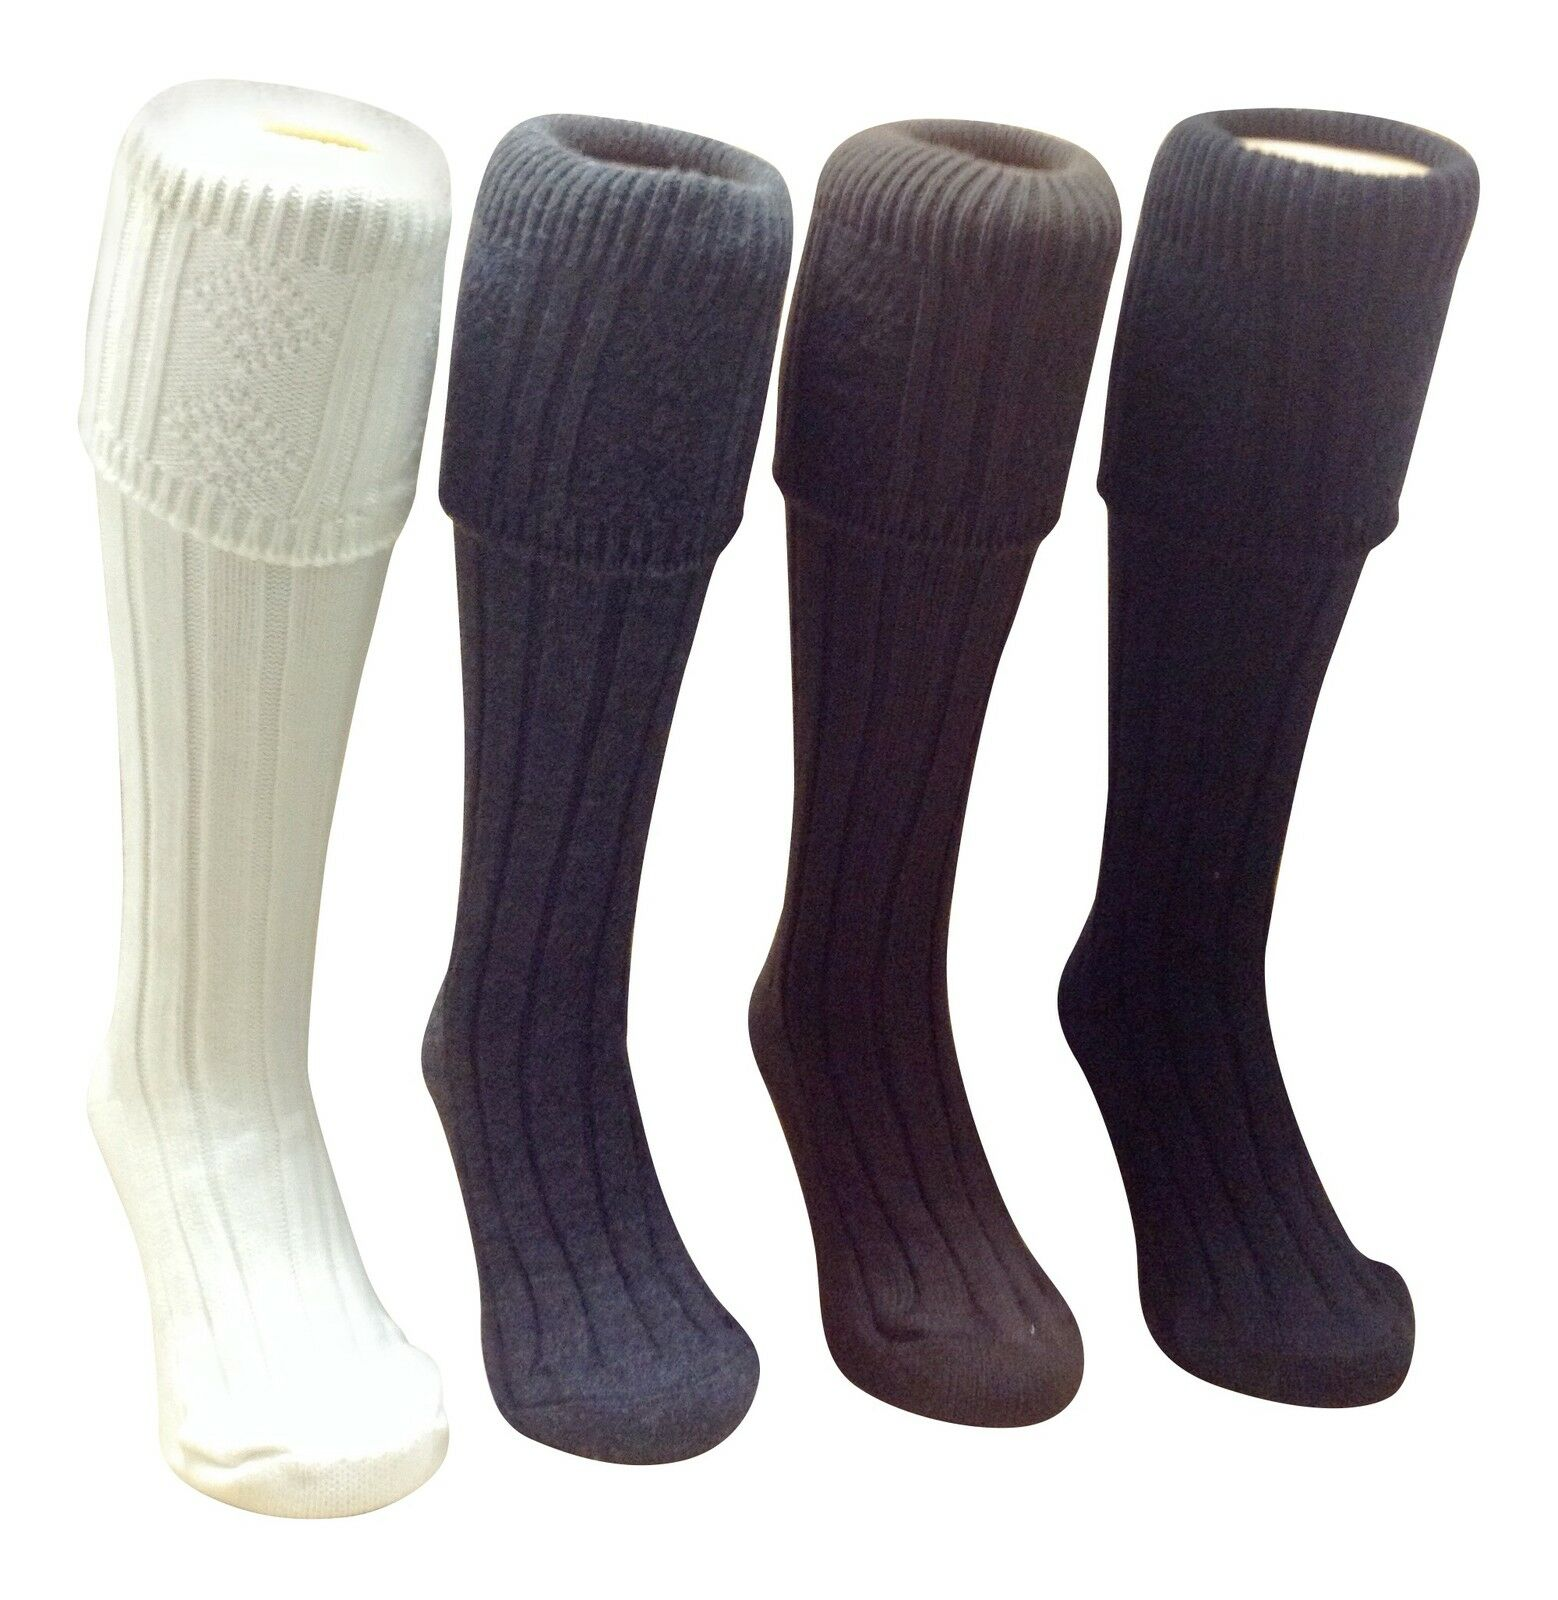 Kilt Hose Socks Chunky Knit Thick Comfortable great colours carefully made in UK